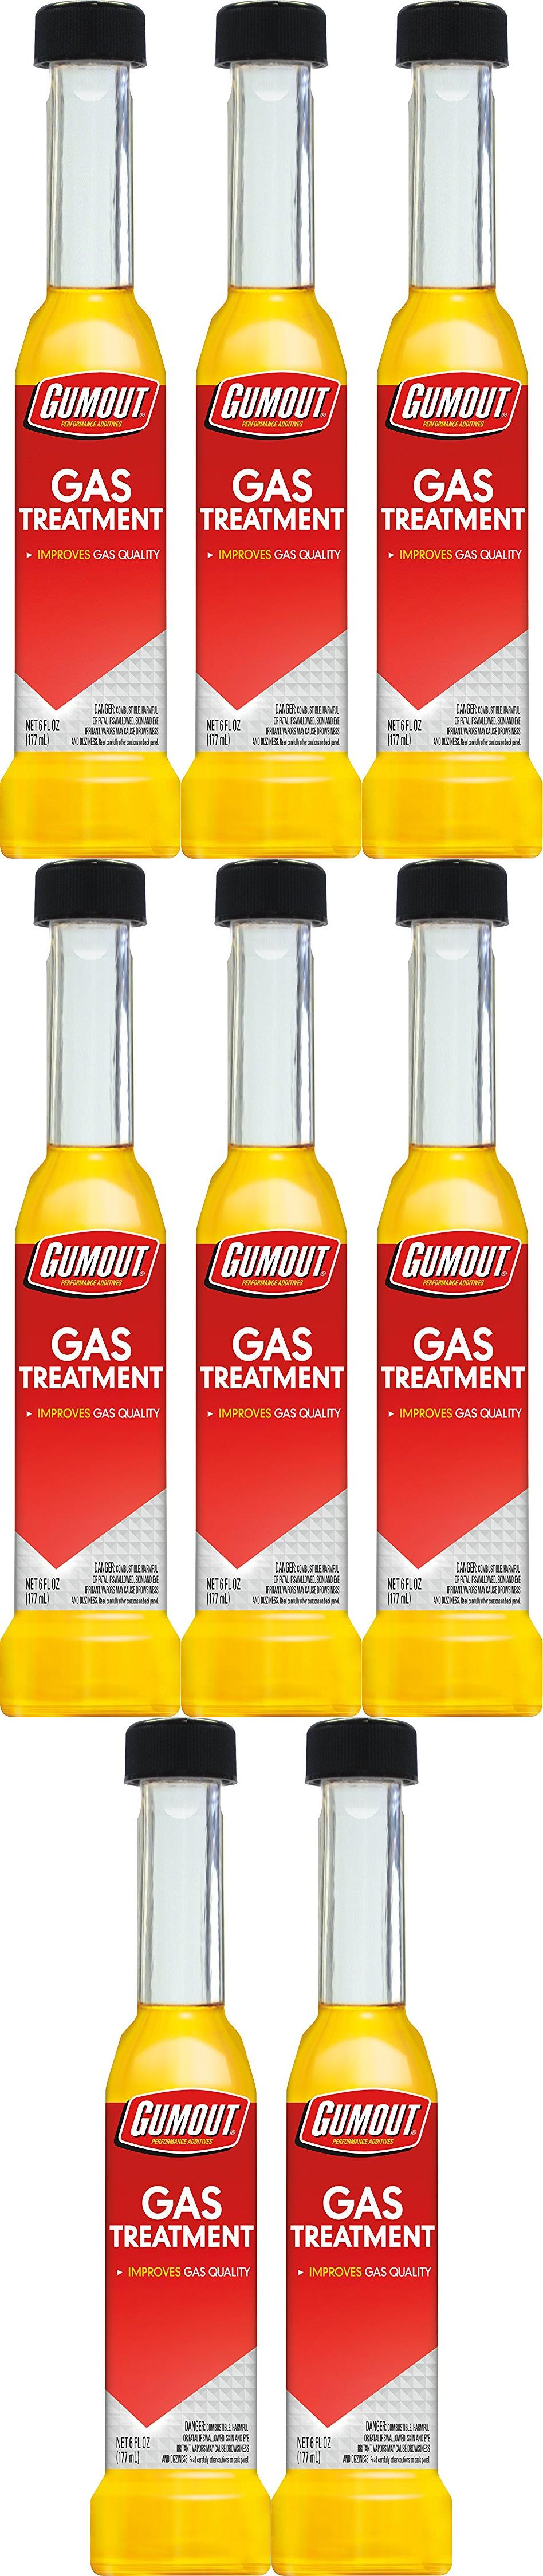 Gumout 510018 Fuel Additive For Gas Use To Remove Water From Fuel Single 8 PACK